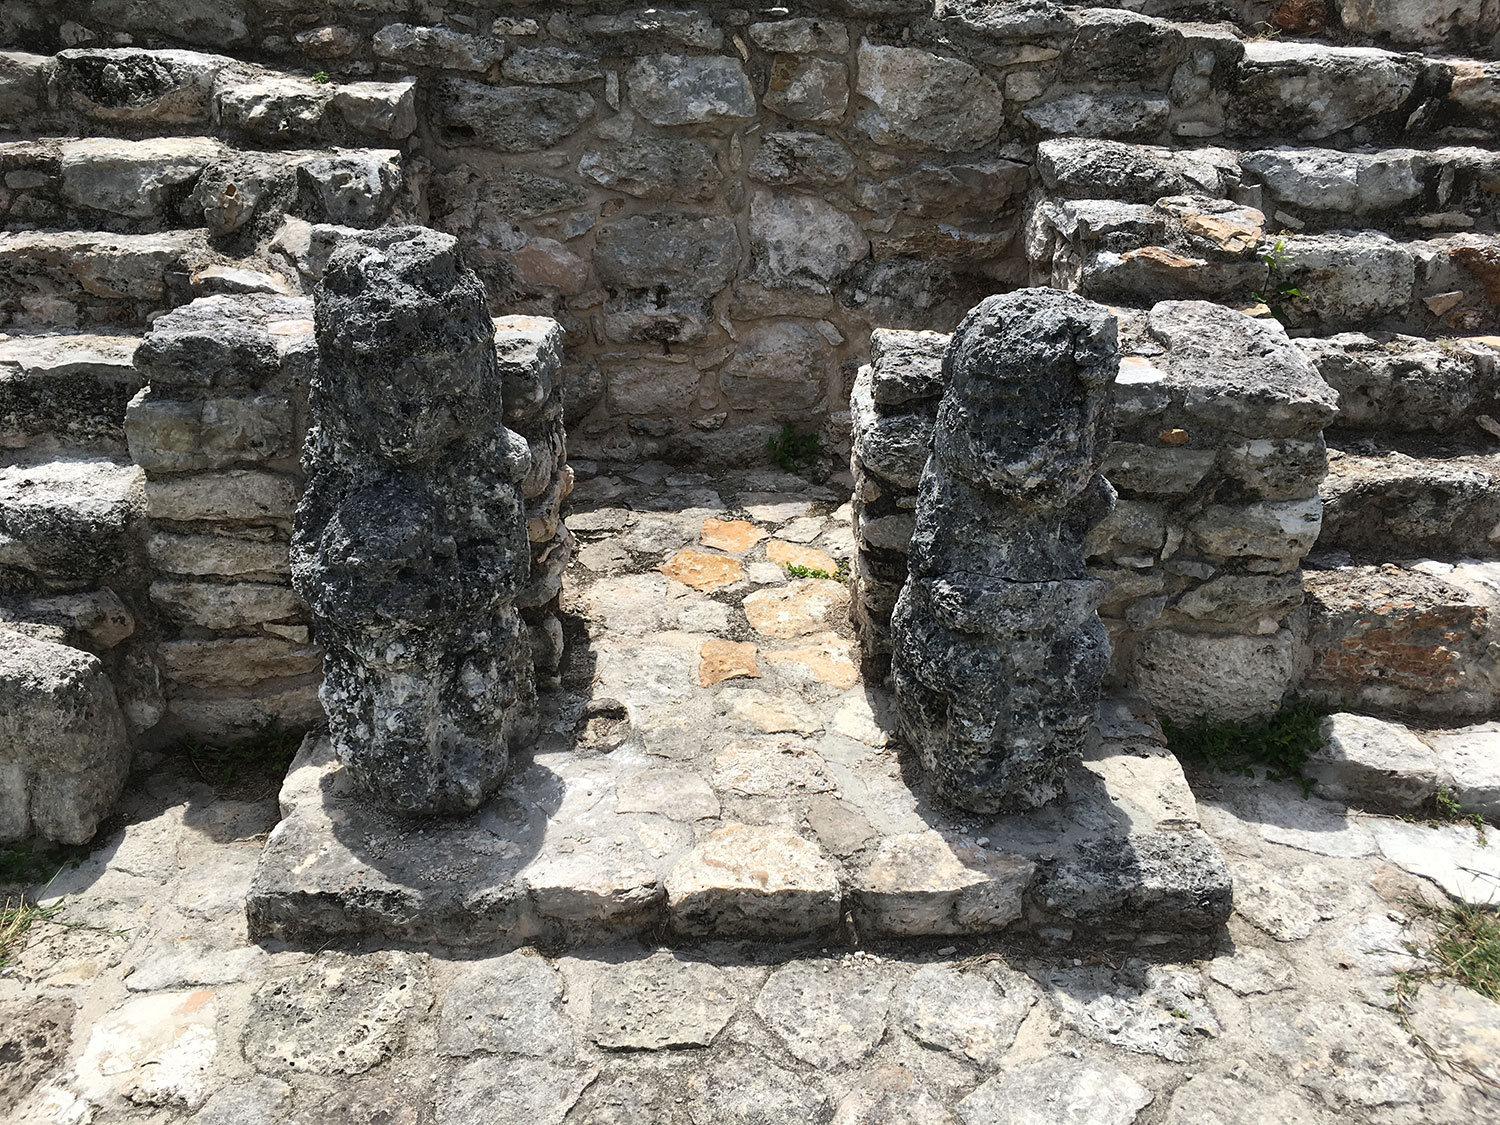 Two eroded statues keep their secret.